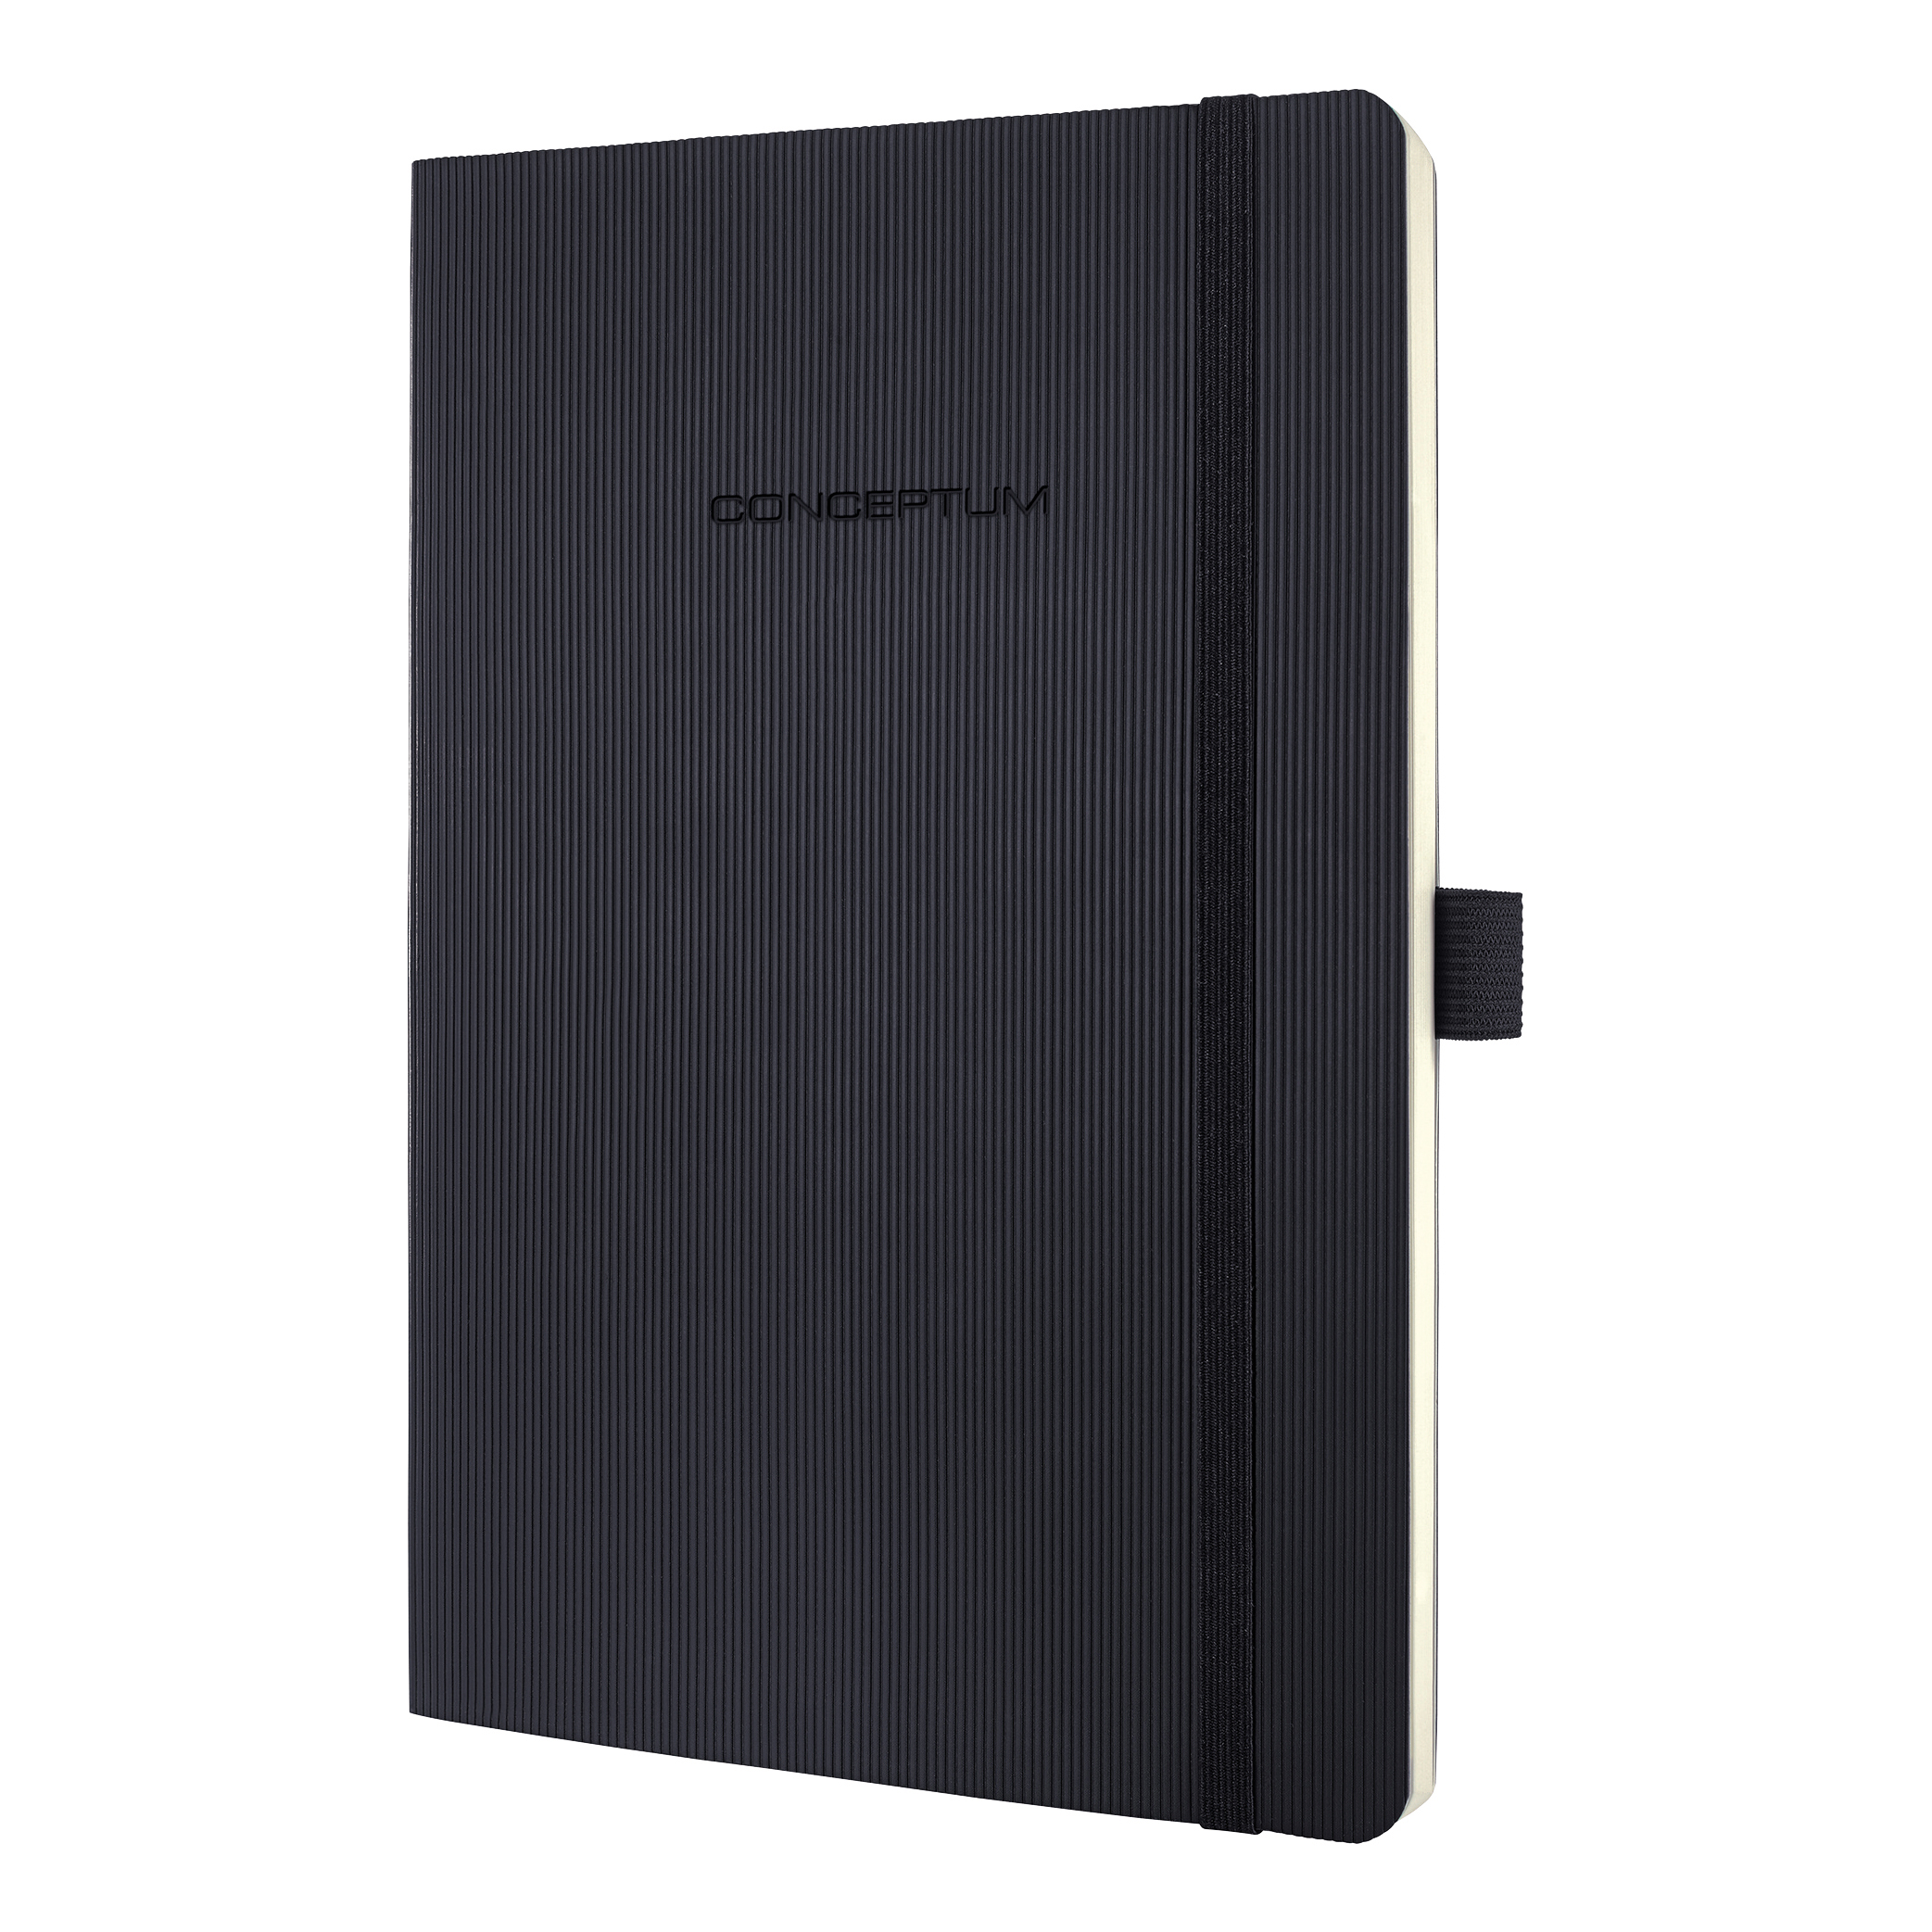 Sigel PEFC Concept Softcover Notebook A5 Black Ref CO321 [2 for 1] Jan-Mar 20